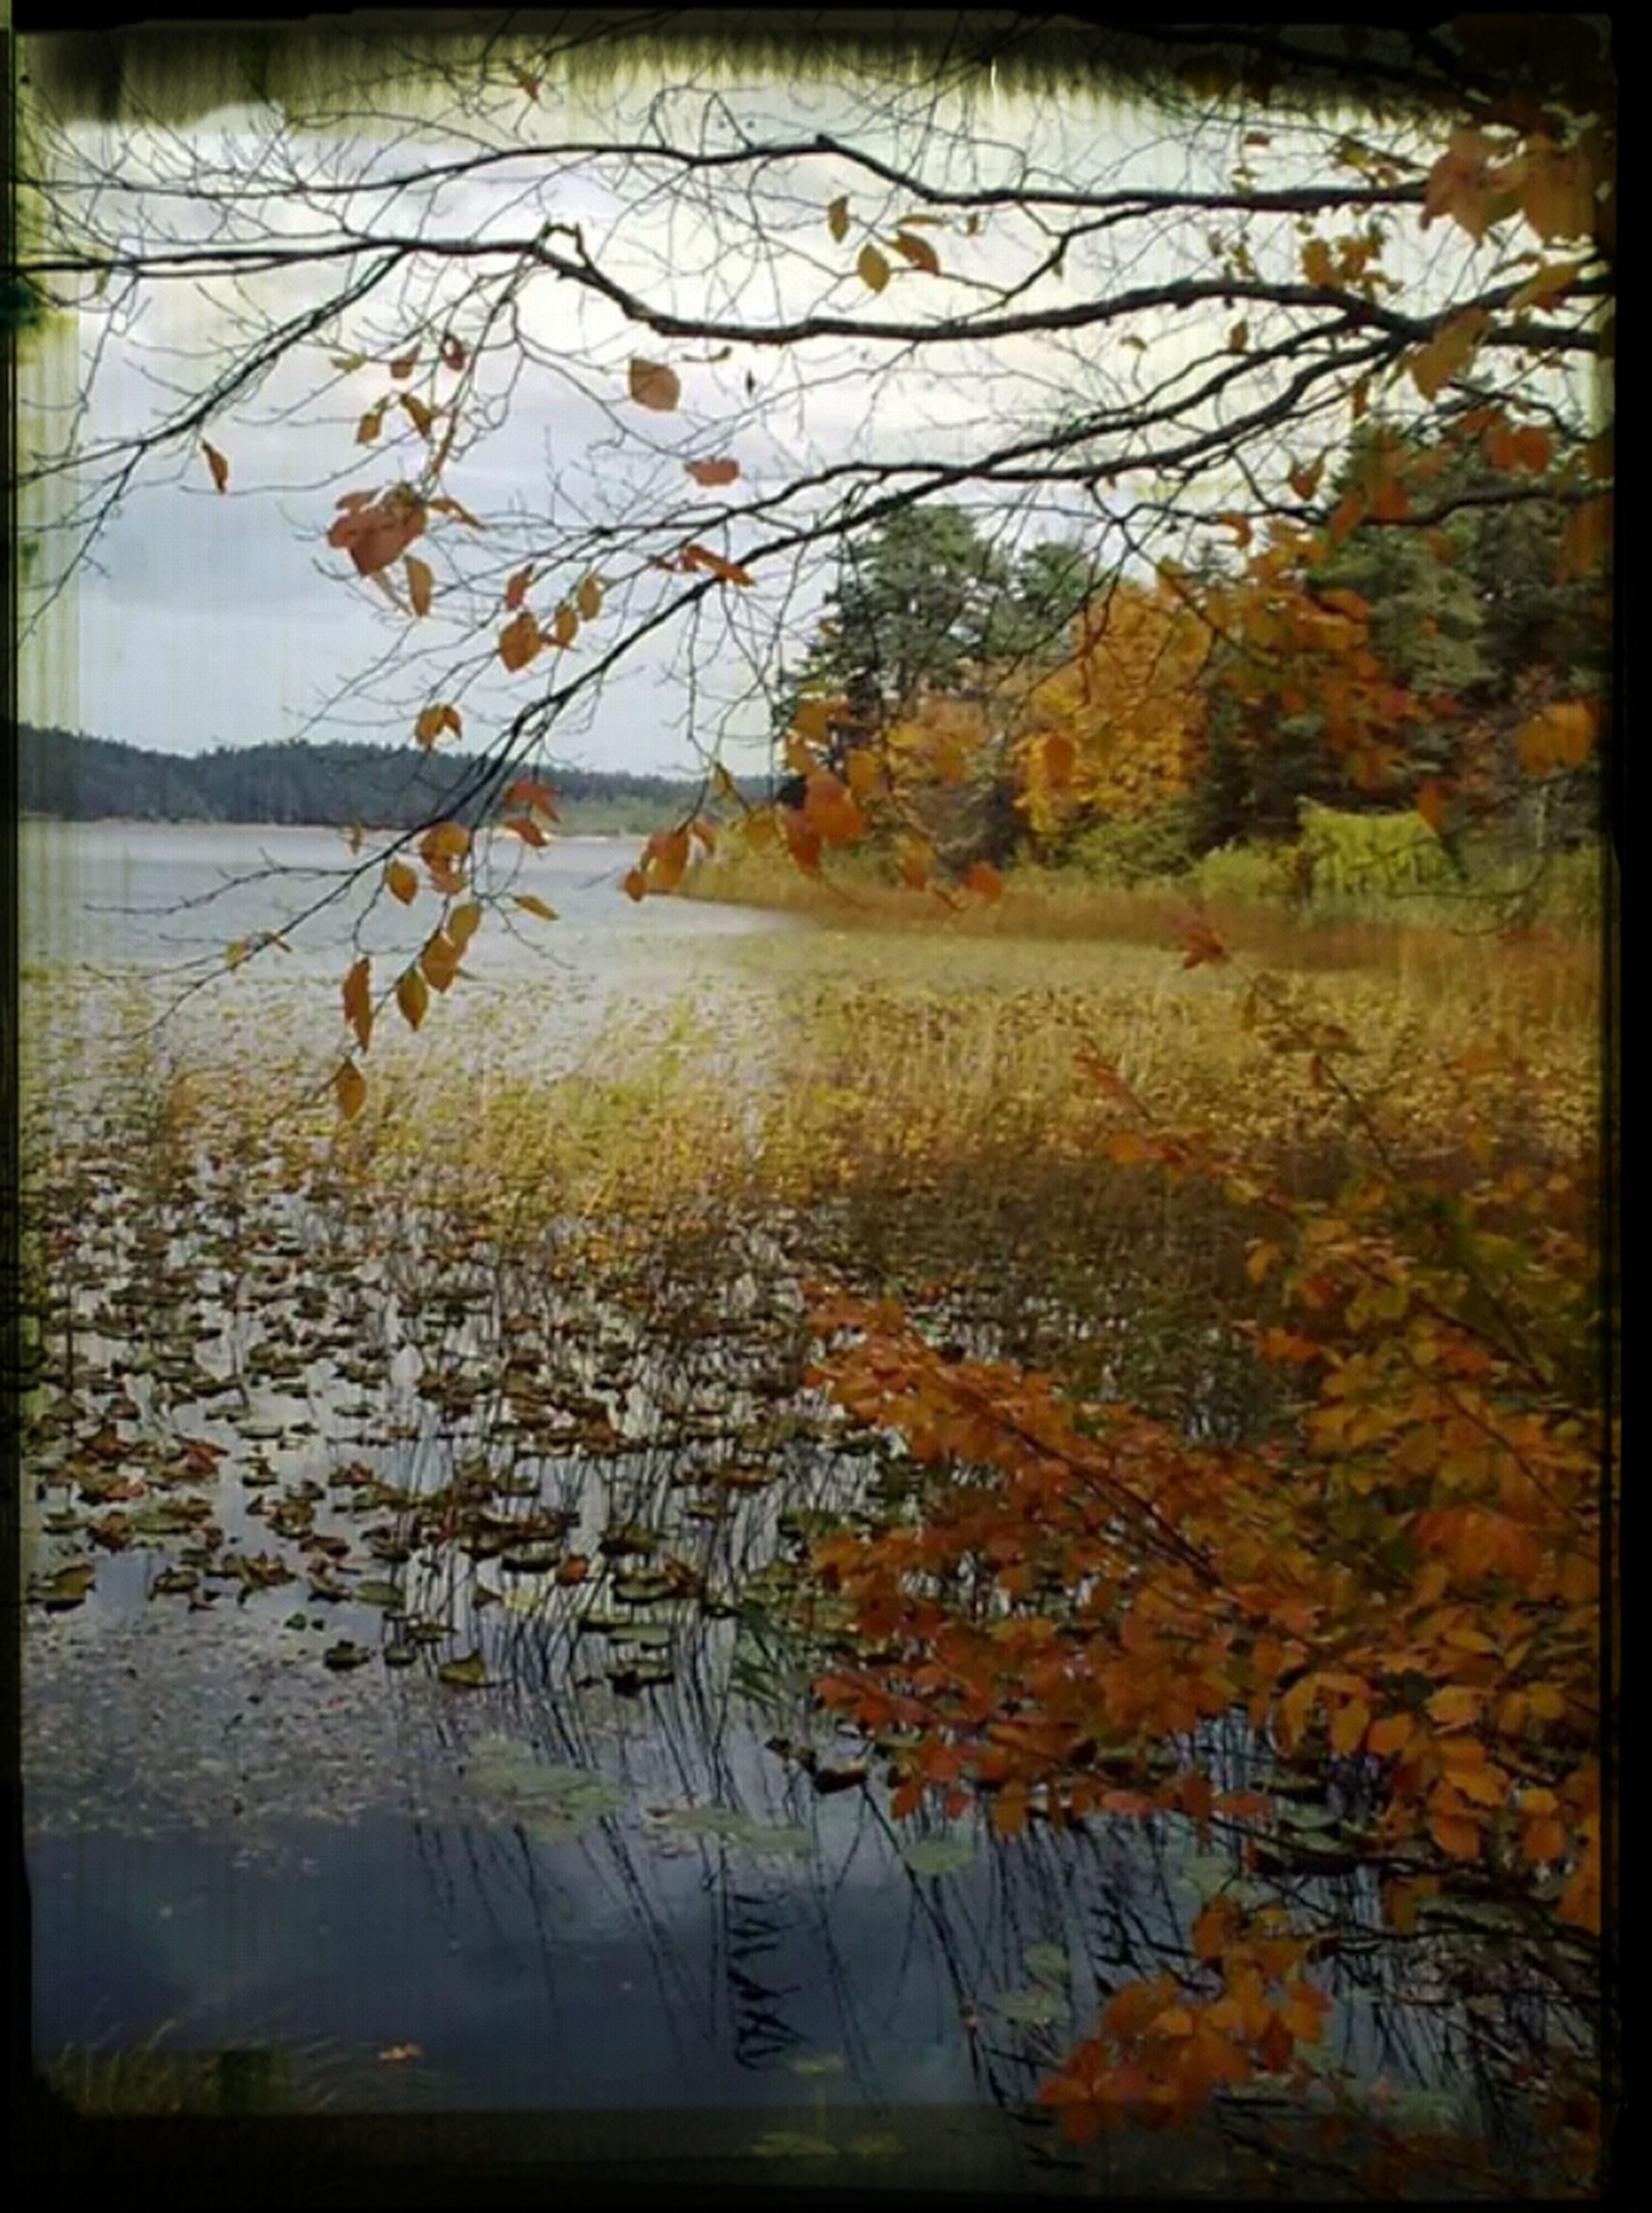 transfer print, water, auto post production filter, tree, lake, autumn, tranquility, branch, reflection, tranquil scene, bare tree, nature, scenics, beauty in nature, change, waterfront, sky, season, river, outdoors